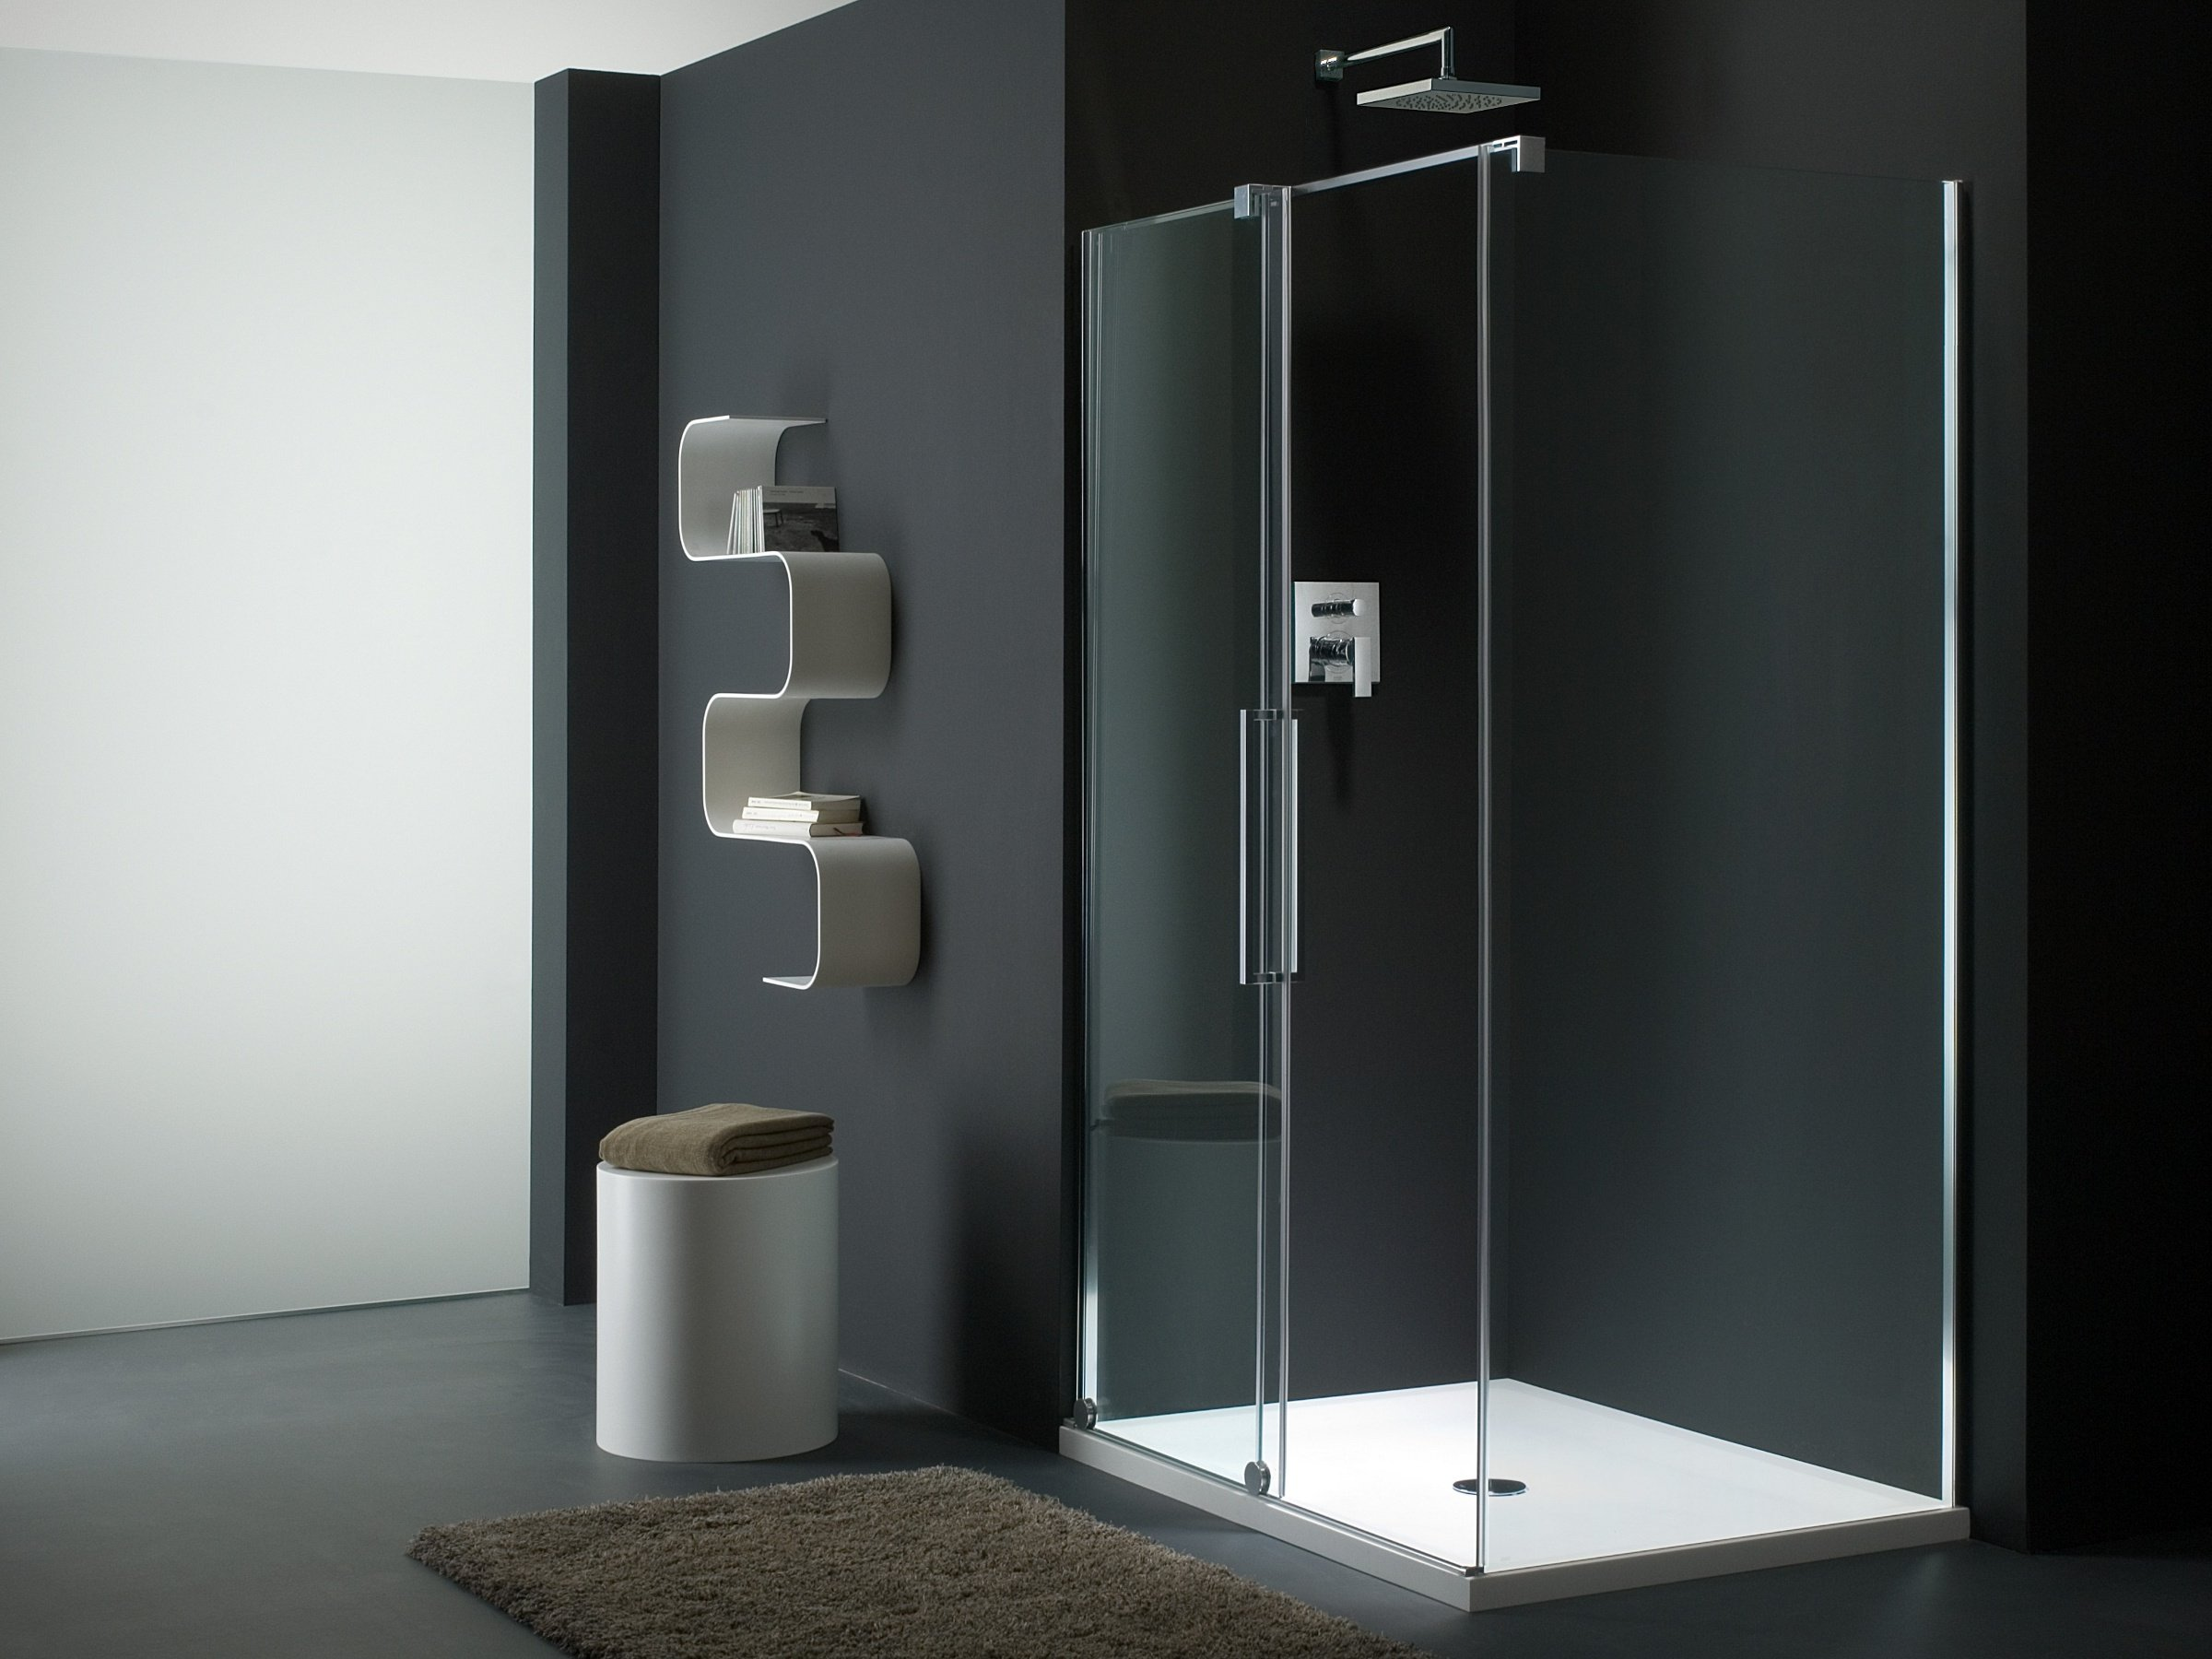 cabine de douche en verre portes coulissantes s lite sn. Black Bedroom Furniture Sets. Home Design Ideas